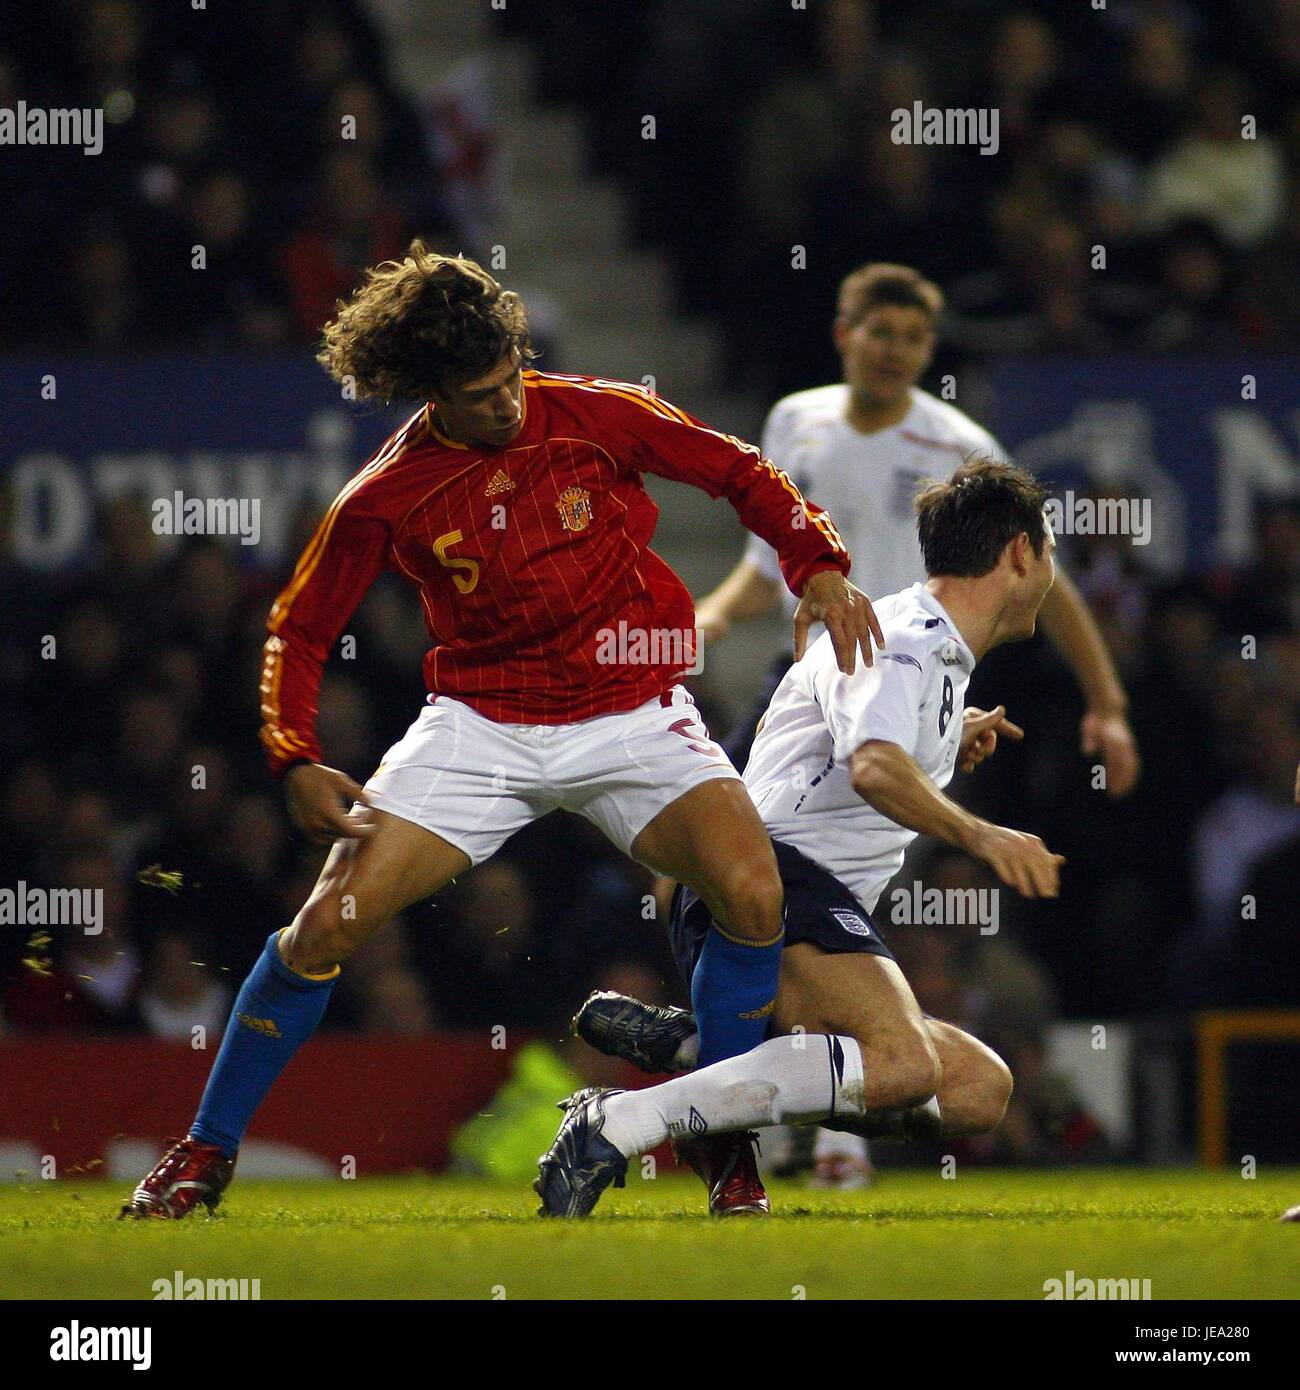 PUYOL CHALLENGES LAMPARD ENGLAND V SPAIN OLD TRAFFORD MANCHESTER ENGLAND 07 February 2007 - Stock Image